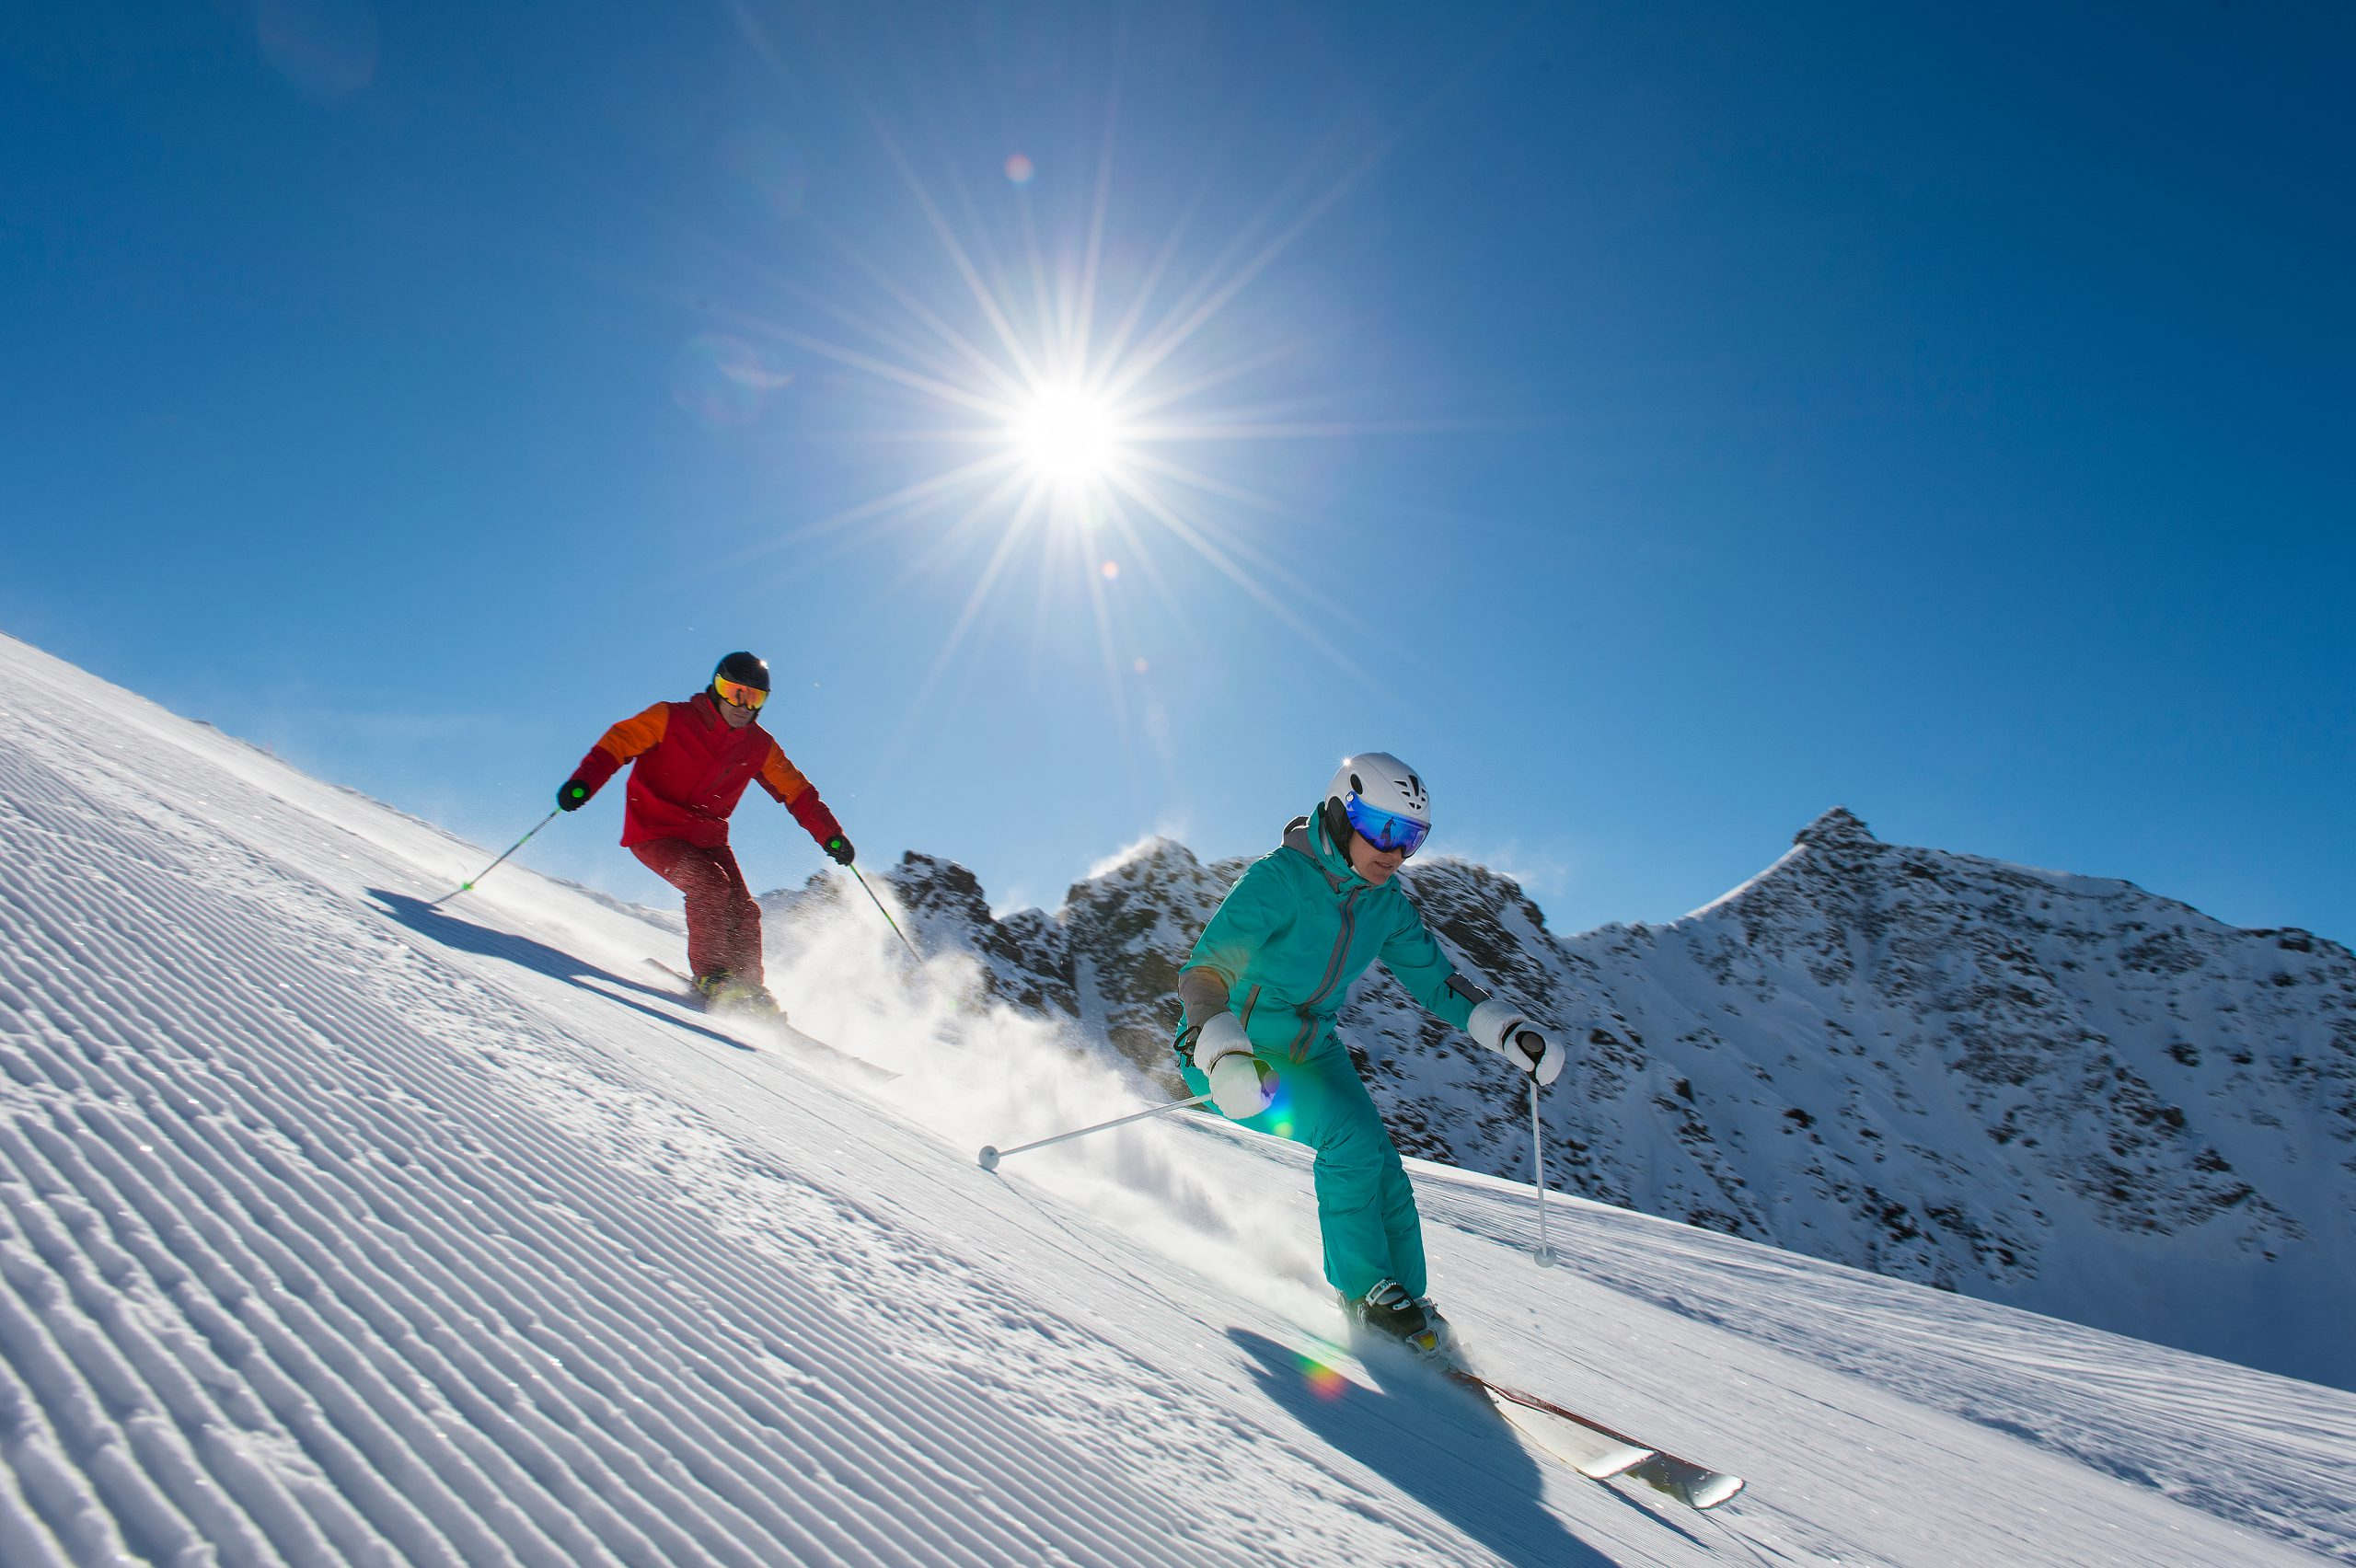 two people skiing downhill with sun in the background